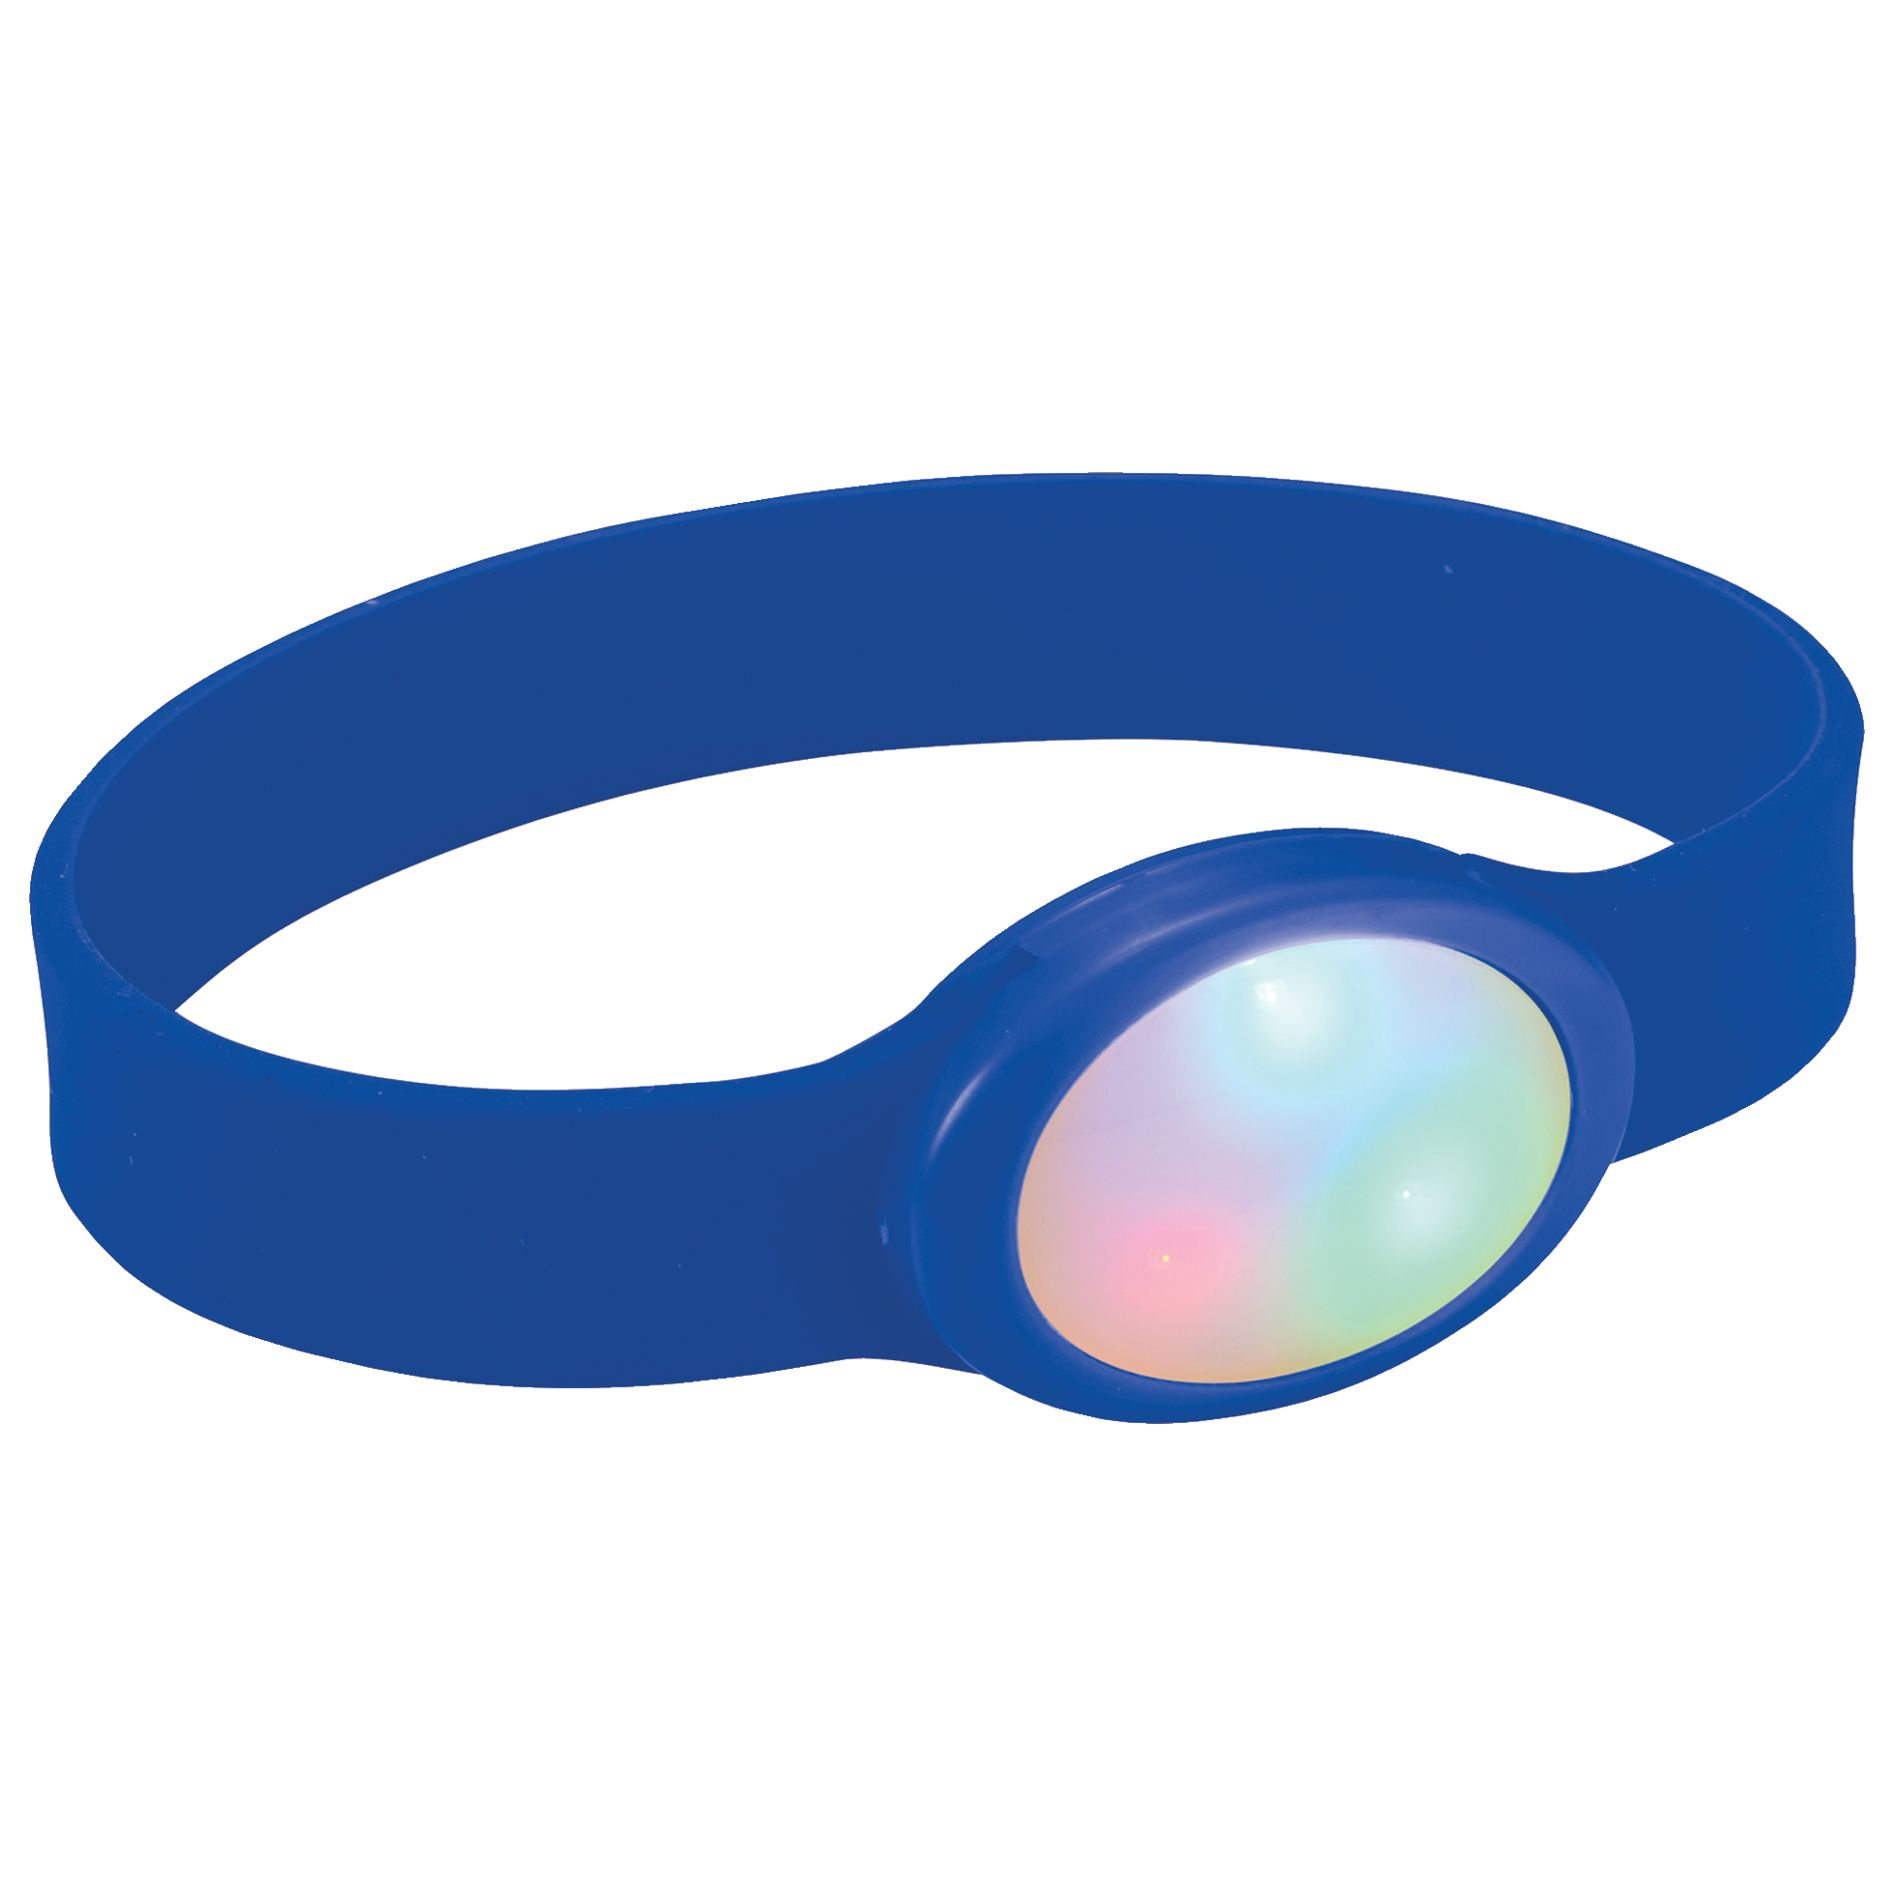 BRAZALETE MULTICOLOR DE LED FLASH   AZ